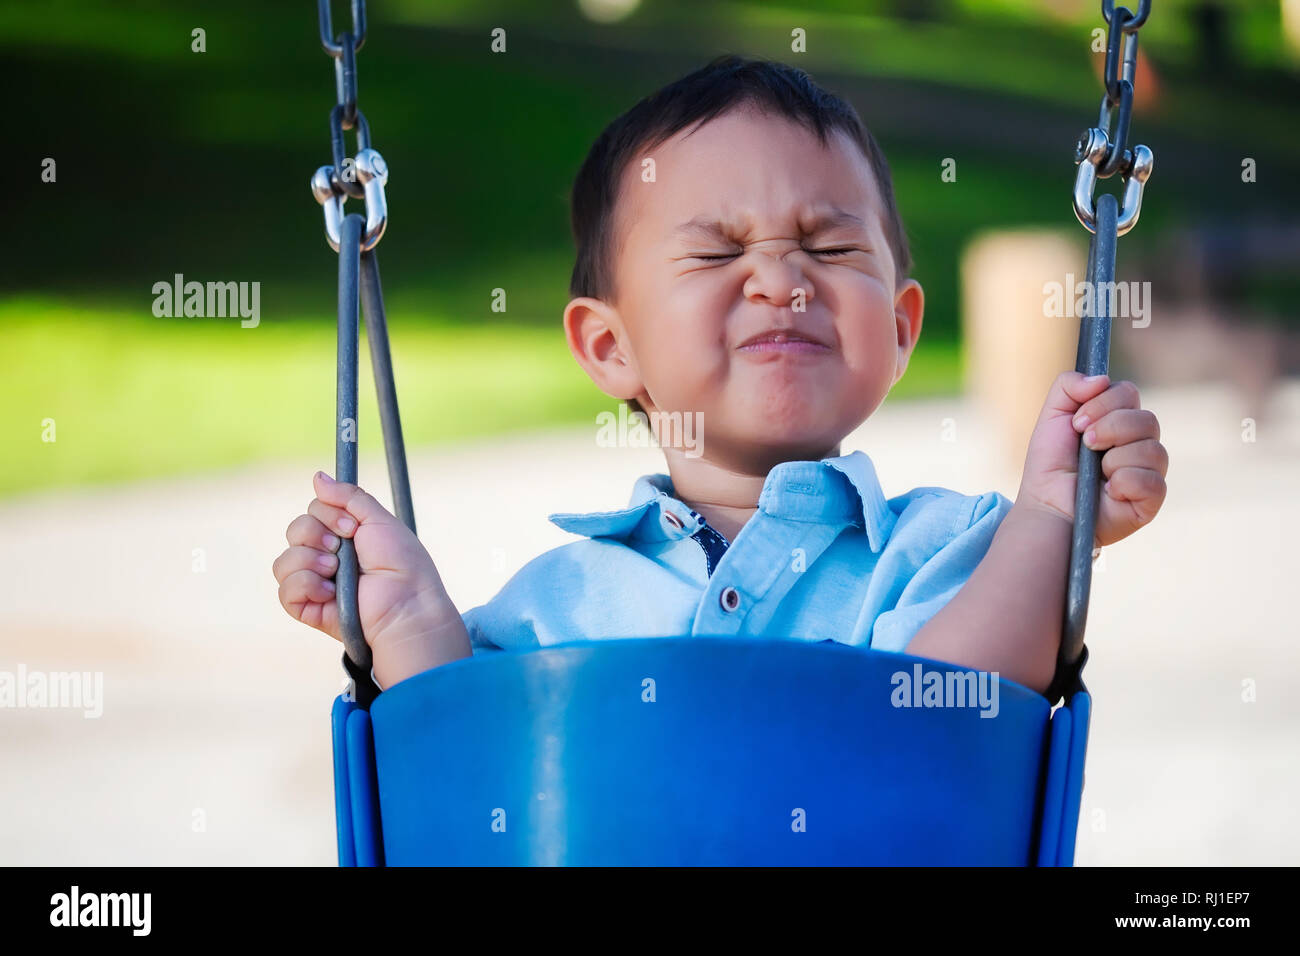 Little boy riding a playground swing with an expression of fear, holding on with a tight grip because he is scared. - Stock Image